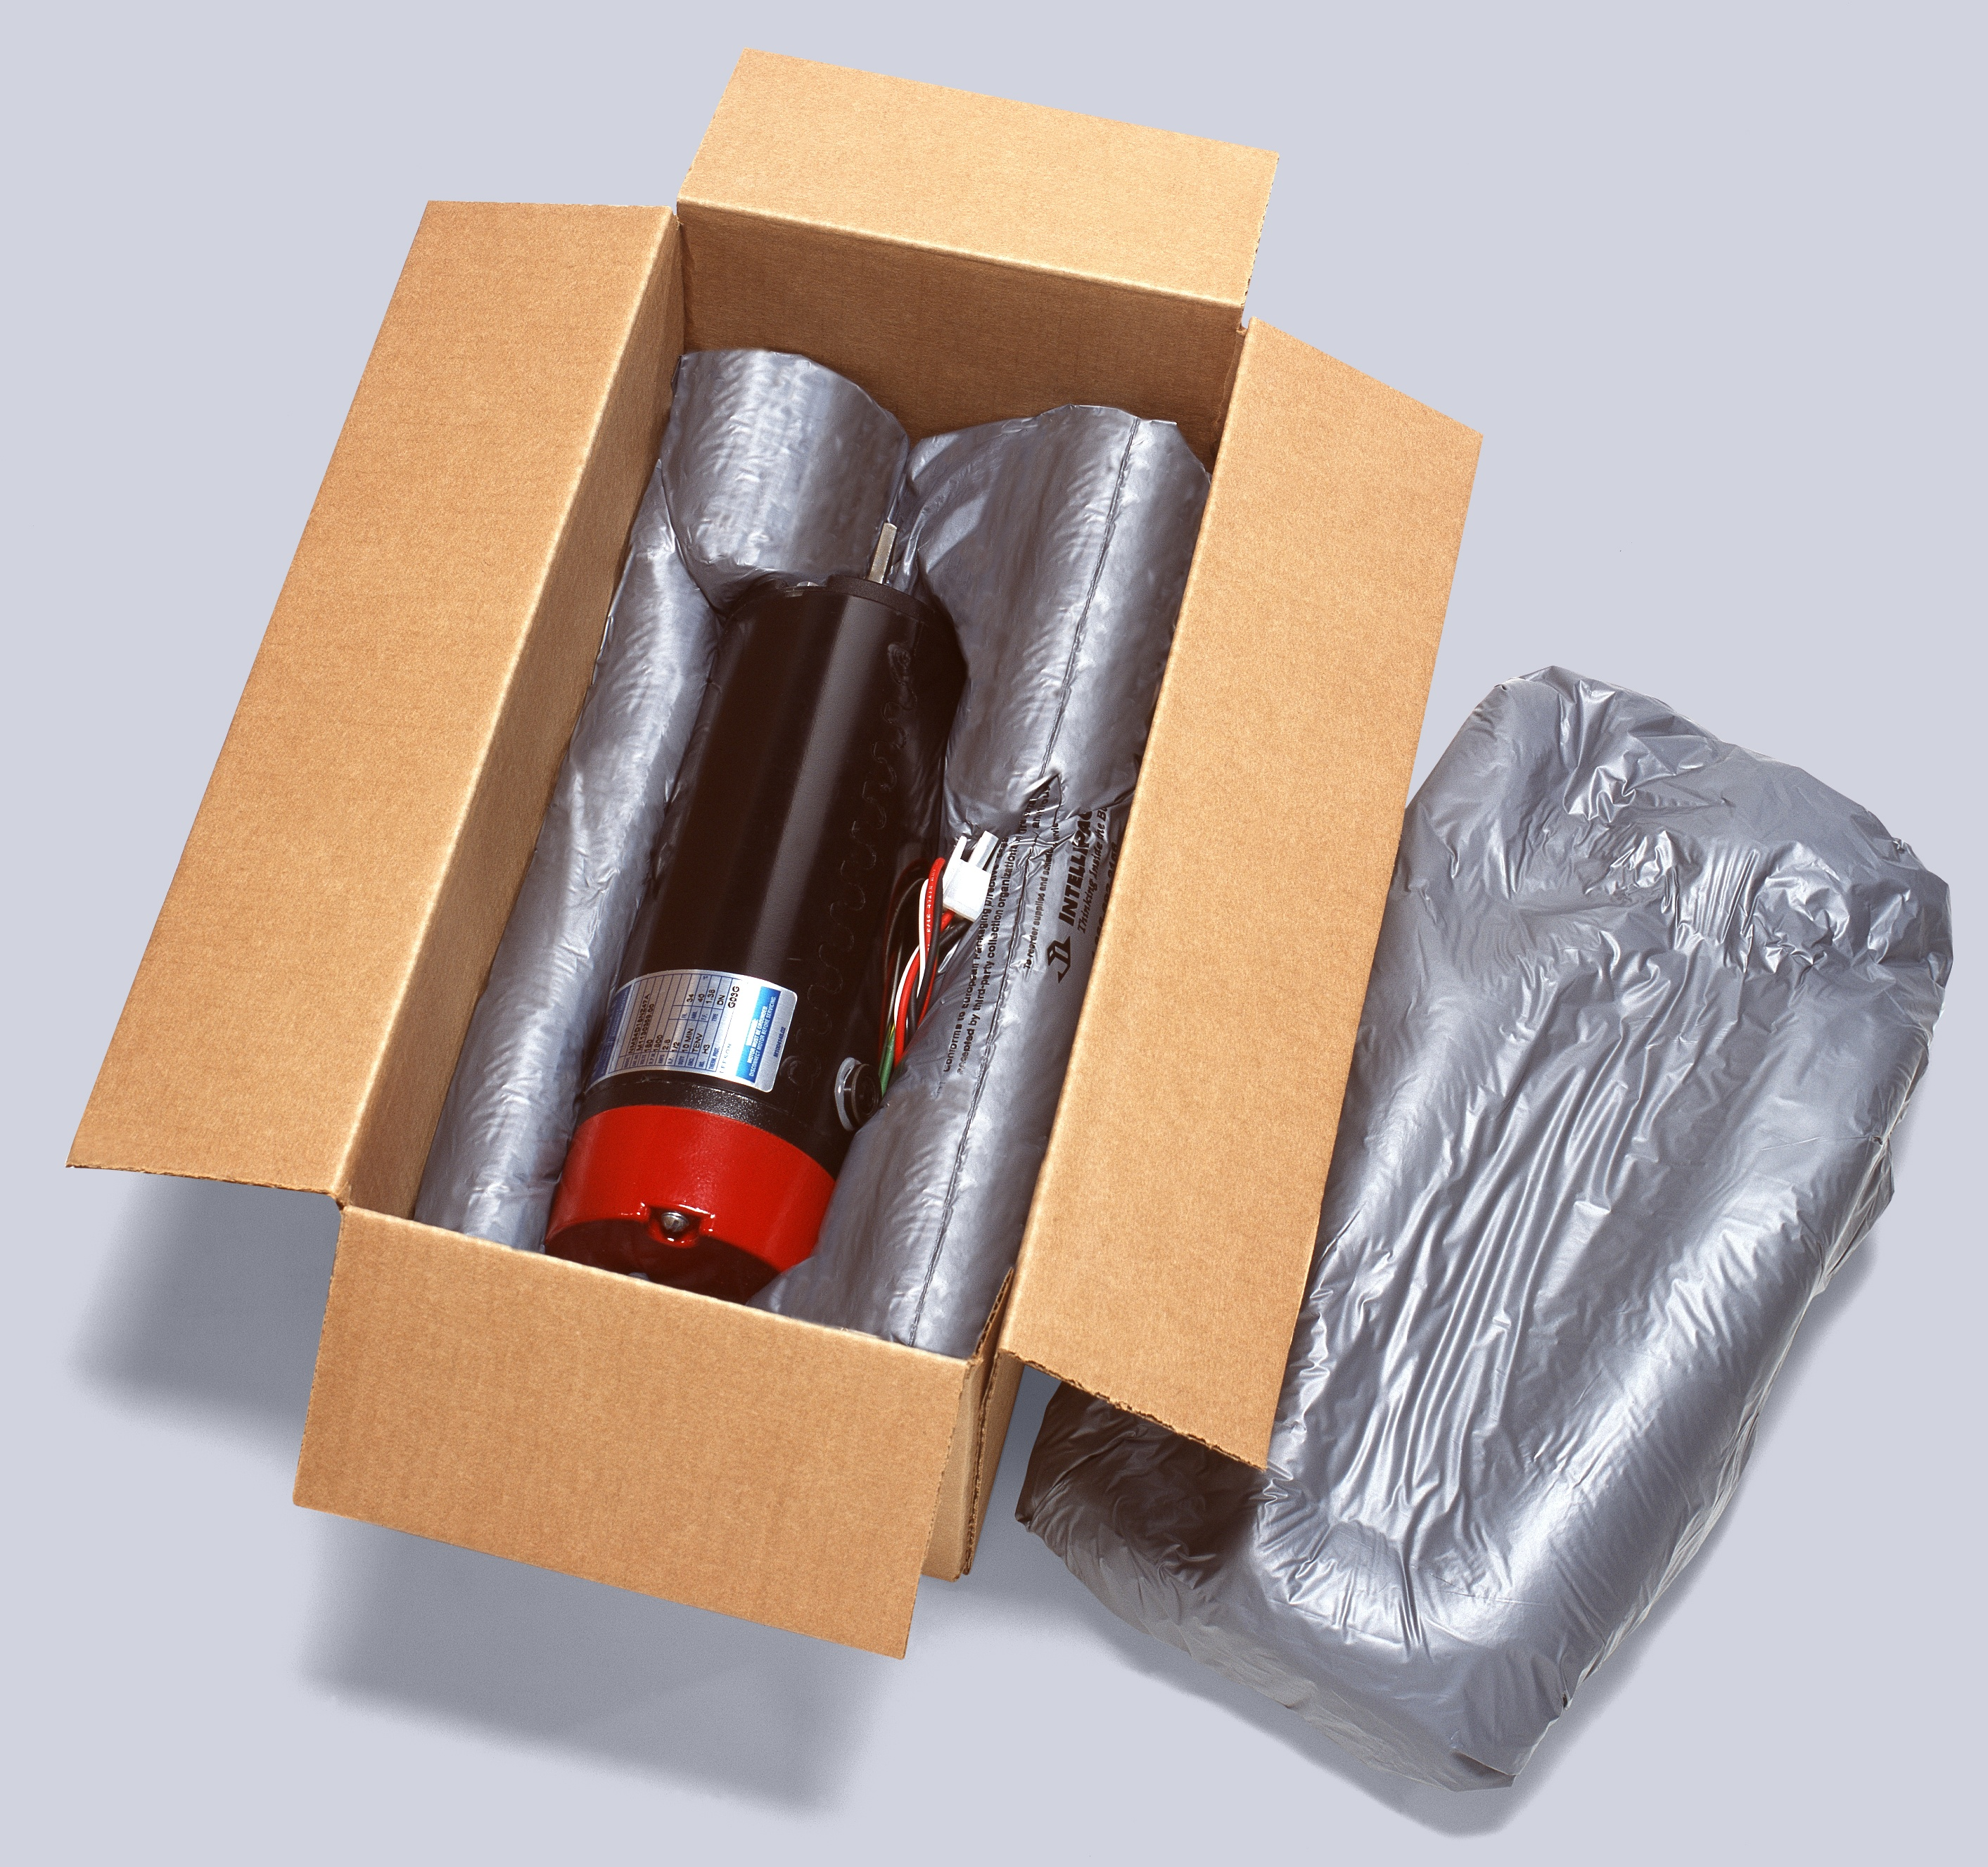 Today, the most cost-effective and time-efficient void fill packaging technologies simplify the packaging process, reduce costs, and increasing productivity.